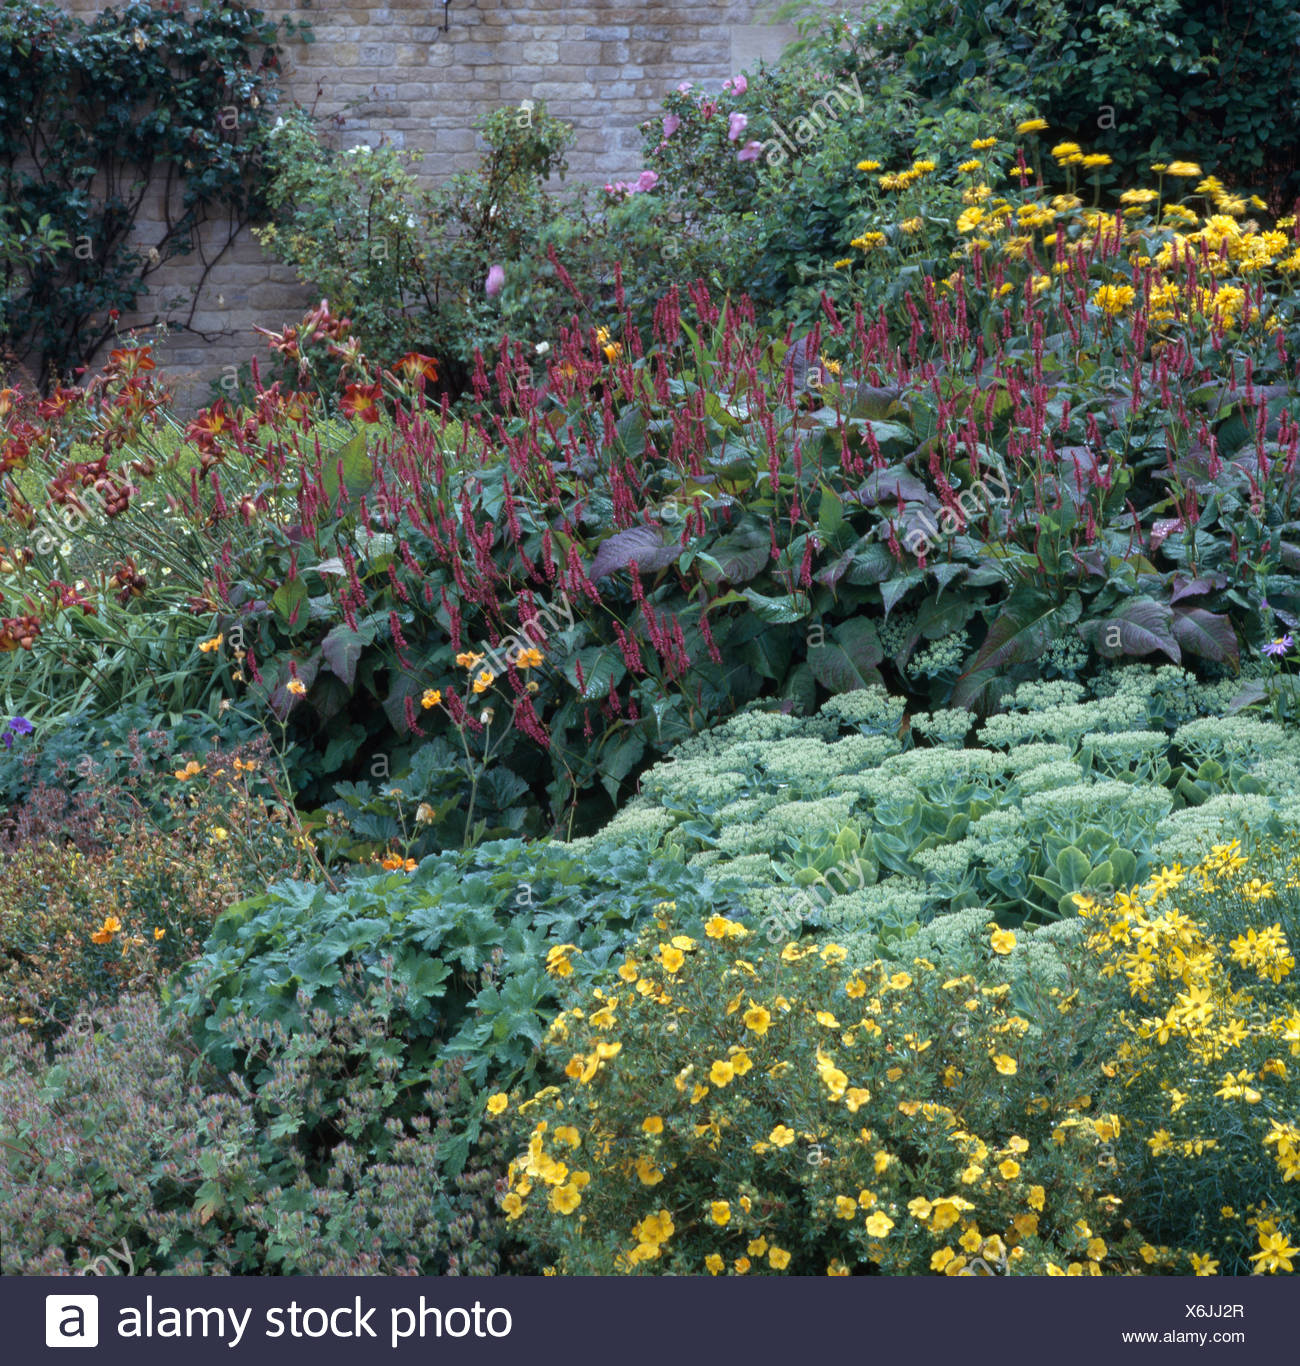 Colourful Perennials Growing In Summer Flowering Borders In Large